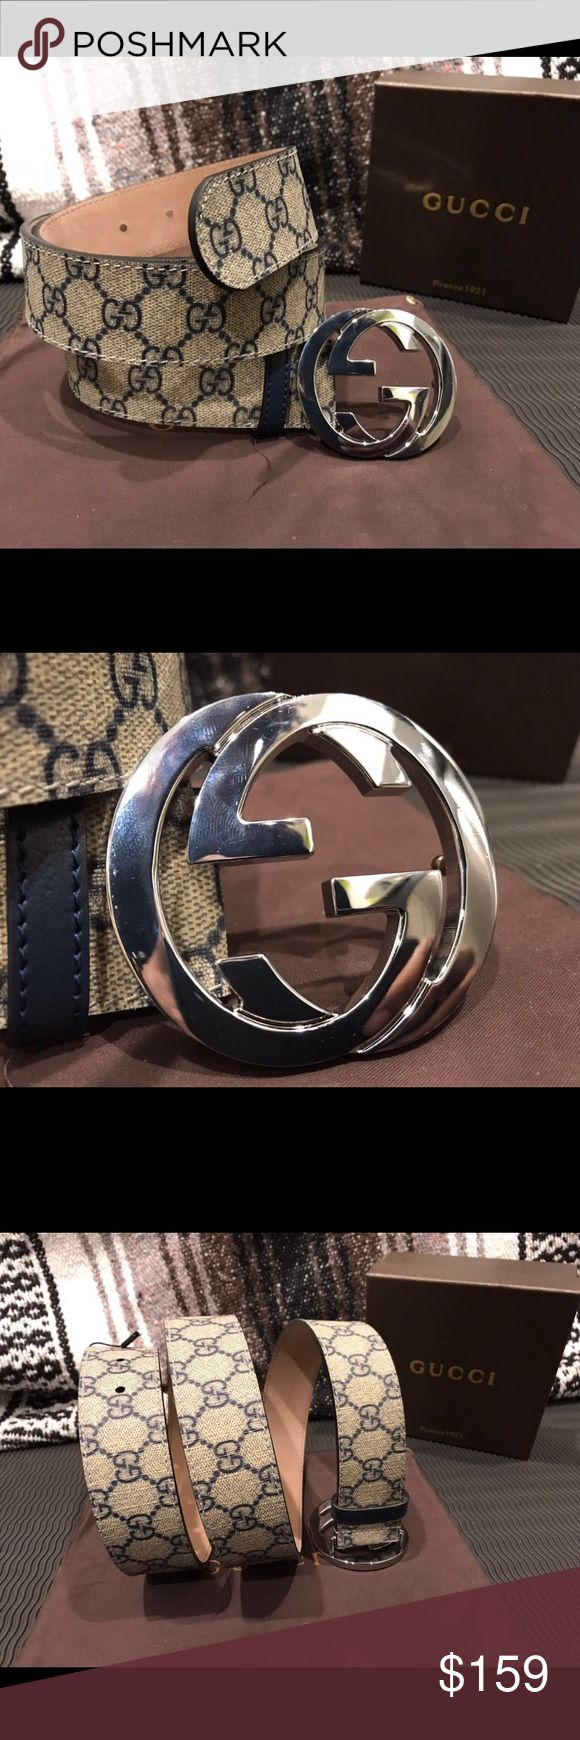 💕Authentic Men's Blue Monogram Gucci Belt💕 100% Authentic Brand New Gucci Belt Comes with Dust Bag, Original Tags, and Box! (Everything in the pictures)  Sizing Made Easy! Listed in Euro and US sizes Same day priority shipping 📦  Reasonable Offers will be considered! Gucci Accessories Belts